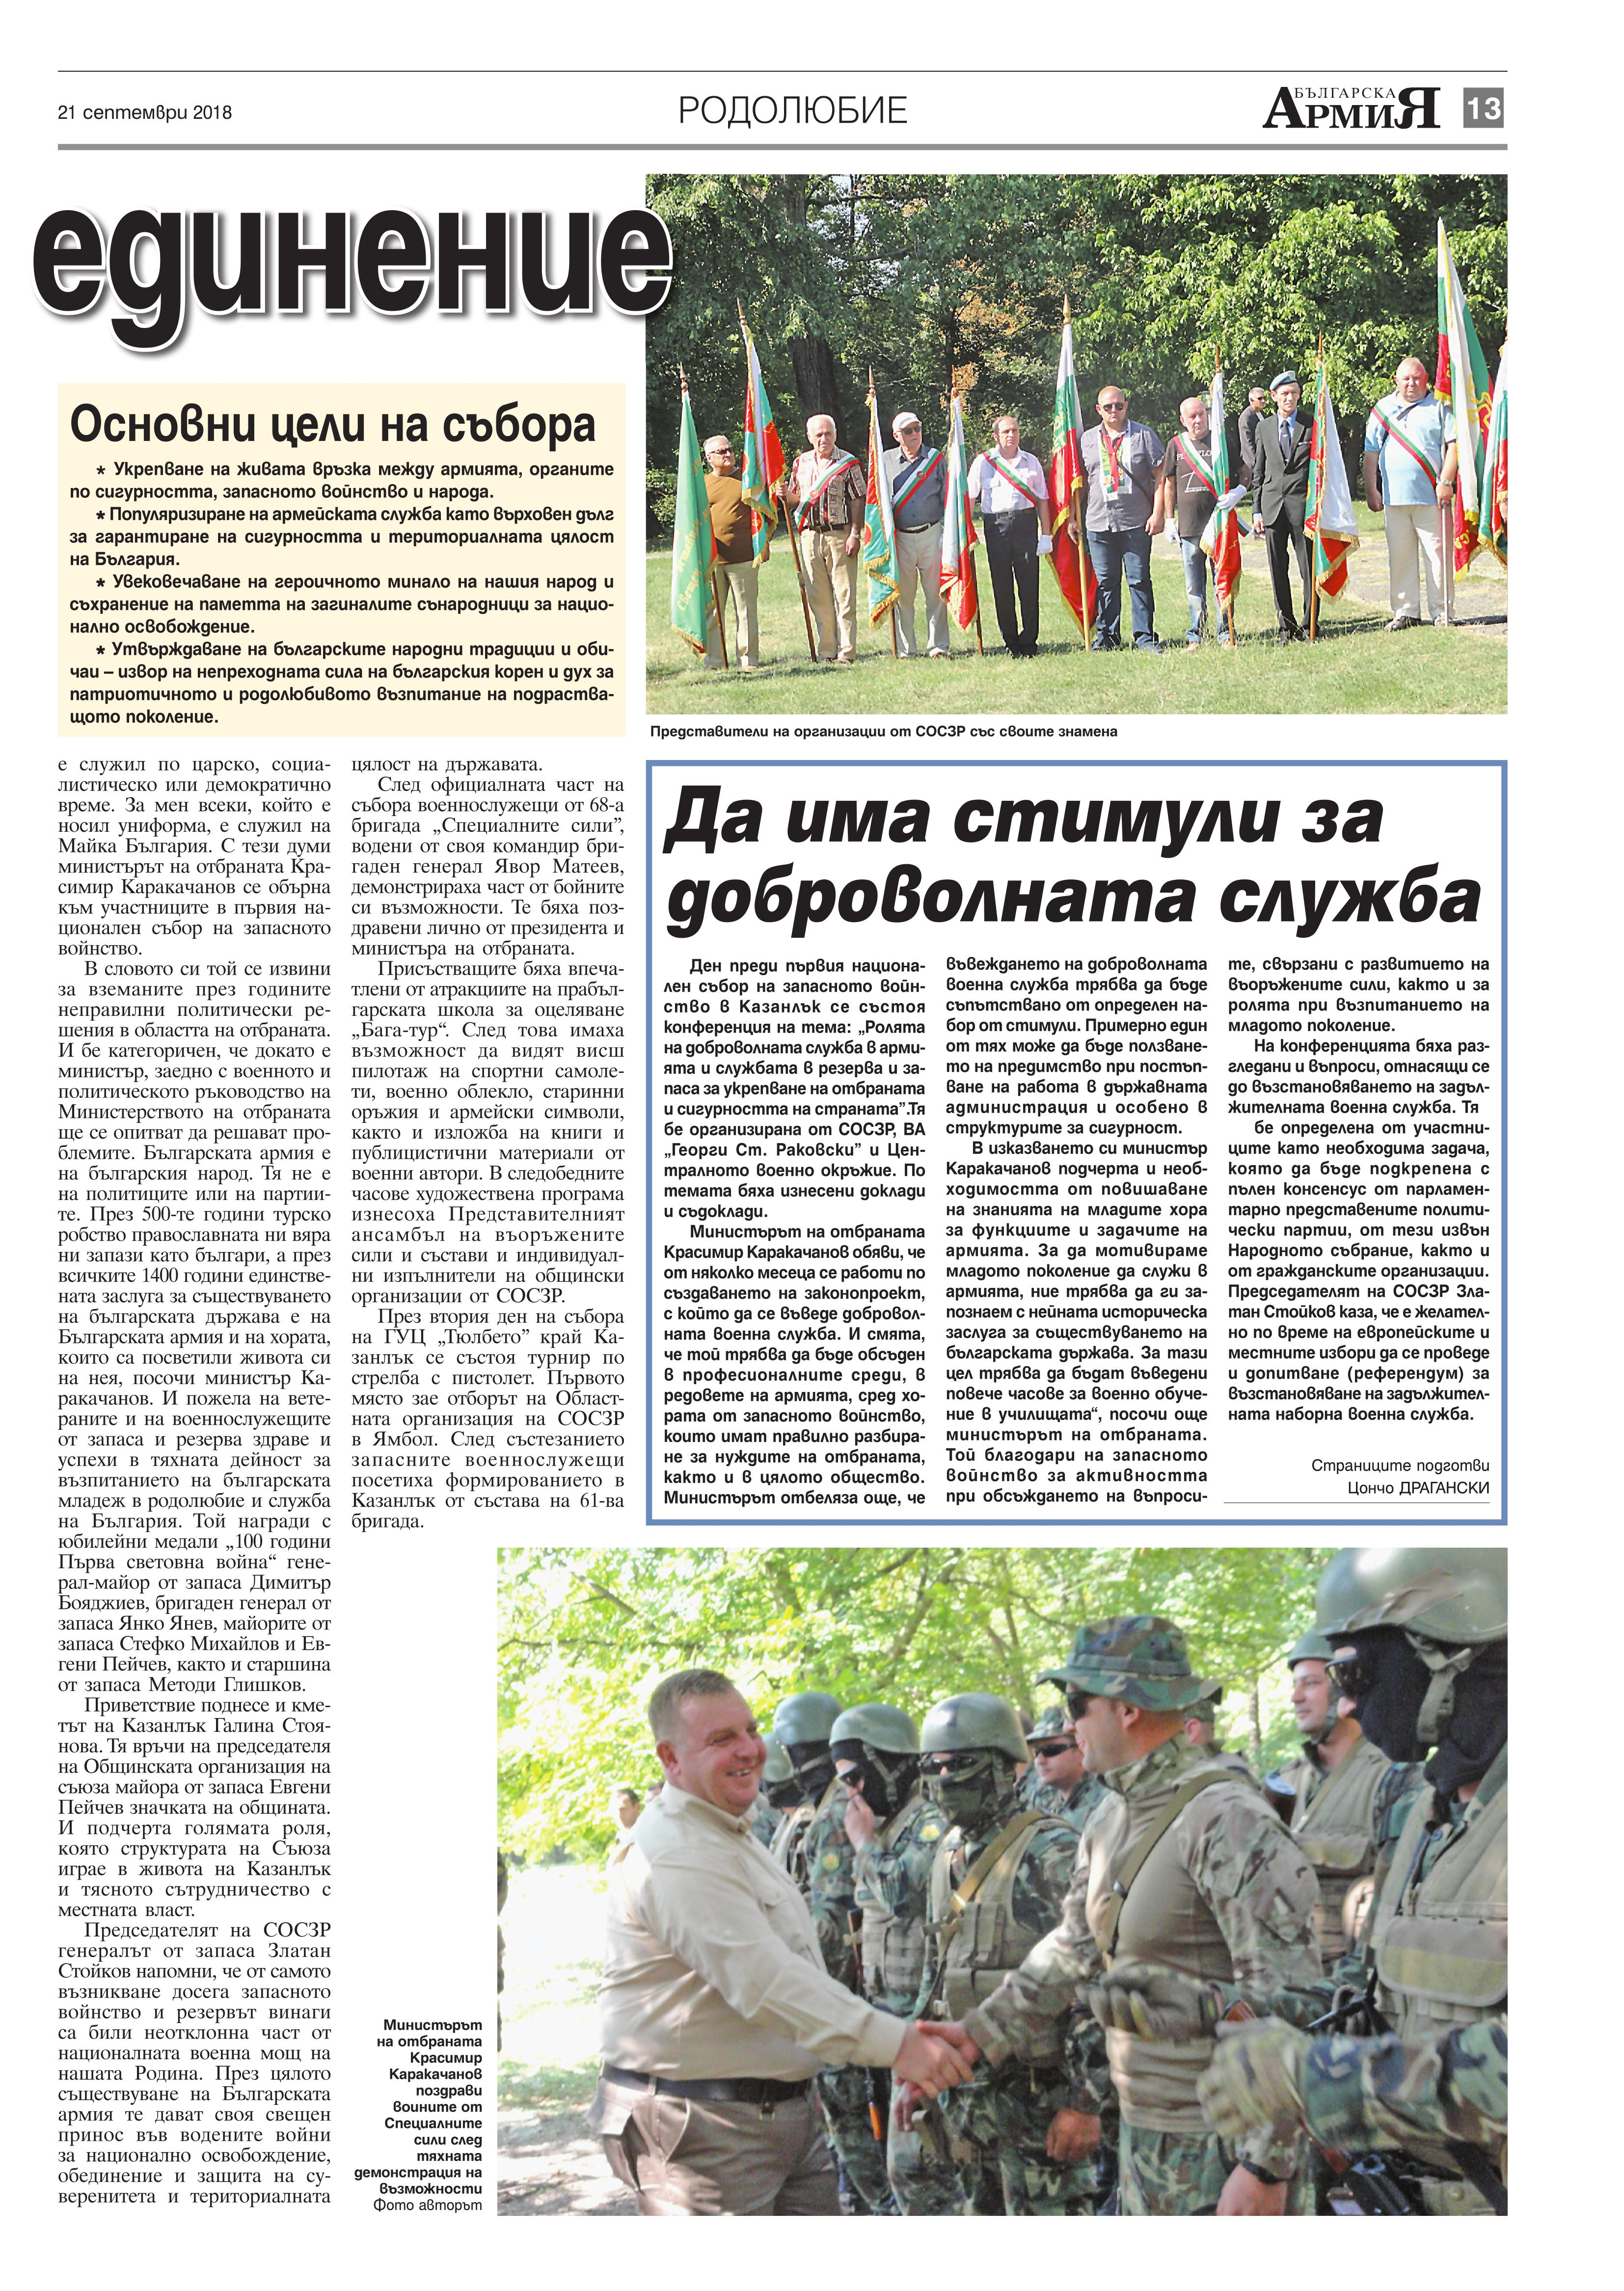 https://armymedia.bg/wp-content/uploads/2015/06/13.page1_-66.jpg